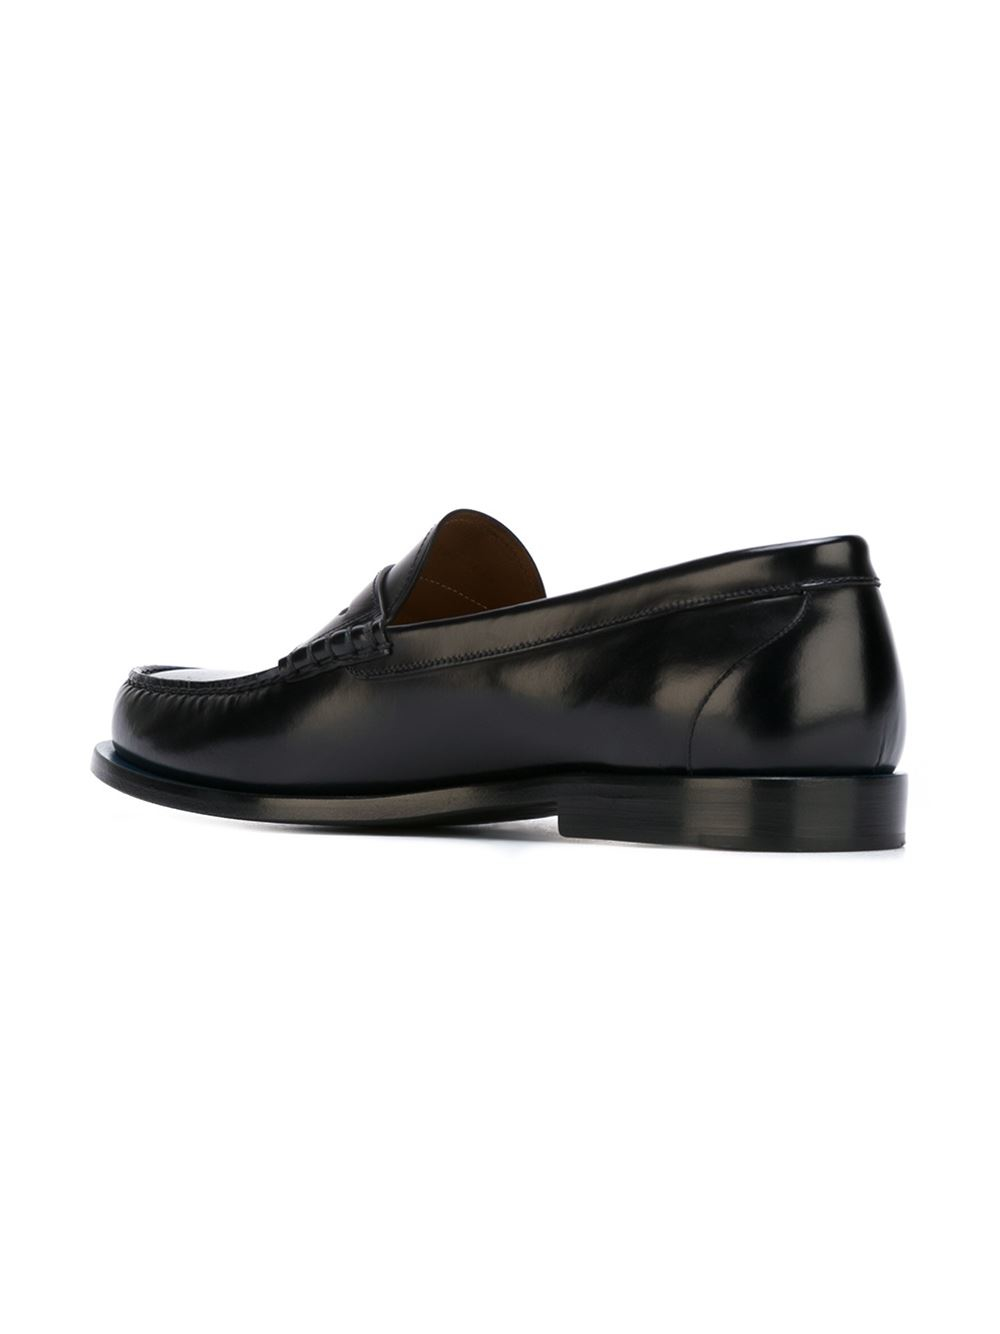 Lyst Givenchy Classic Penny Loafers In Black For Men